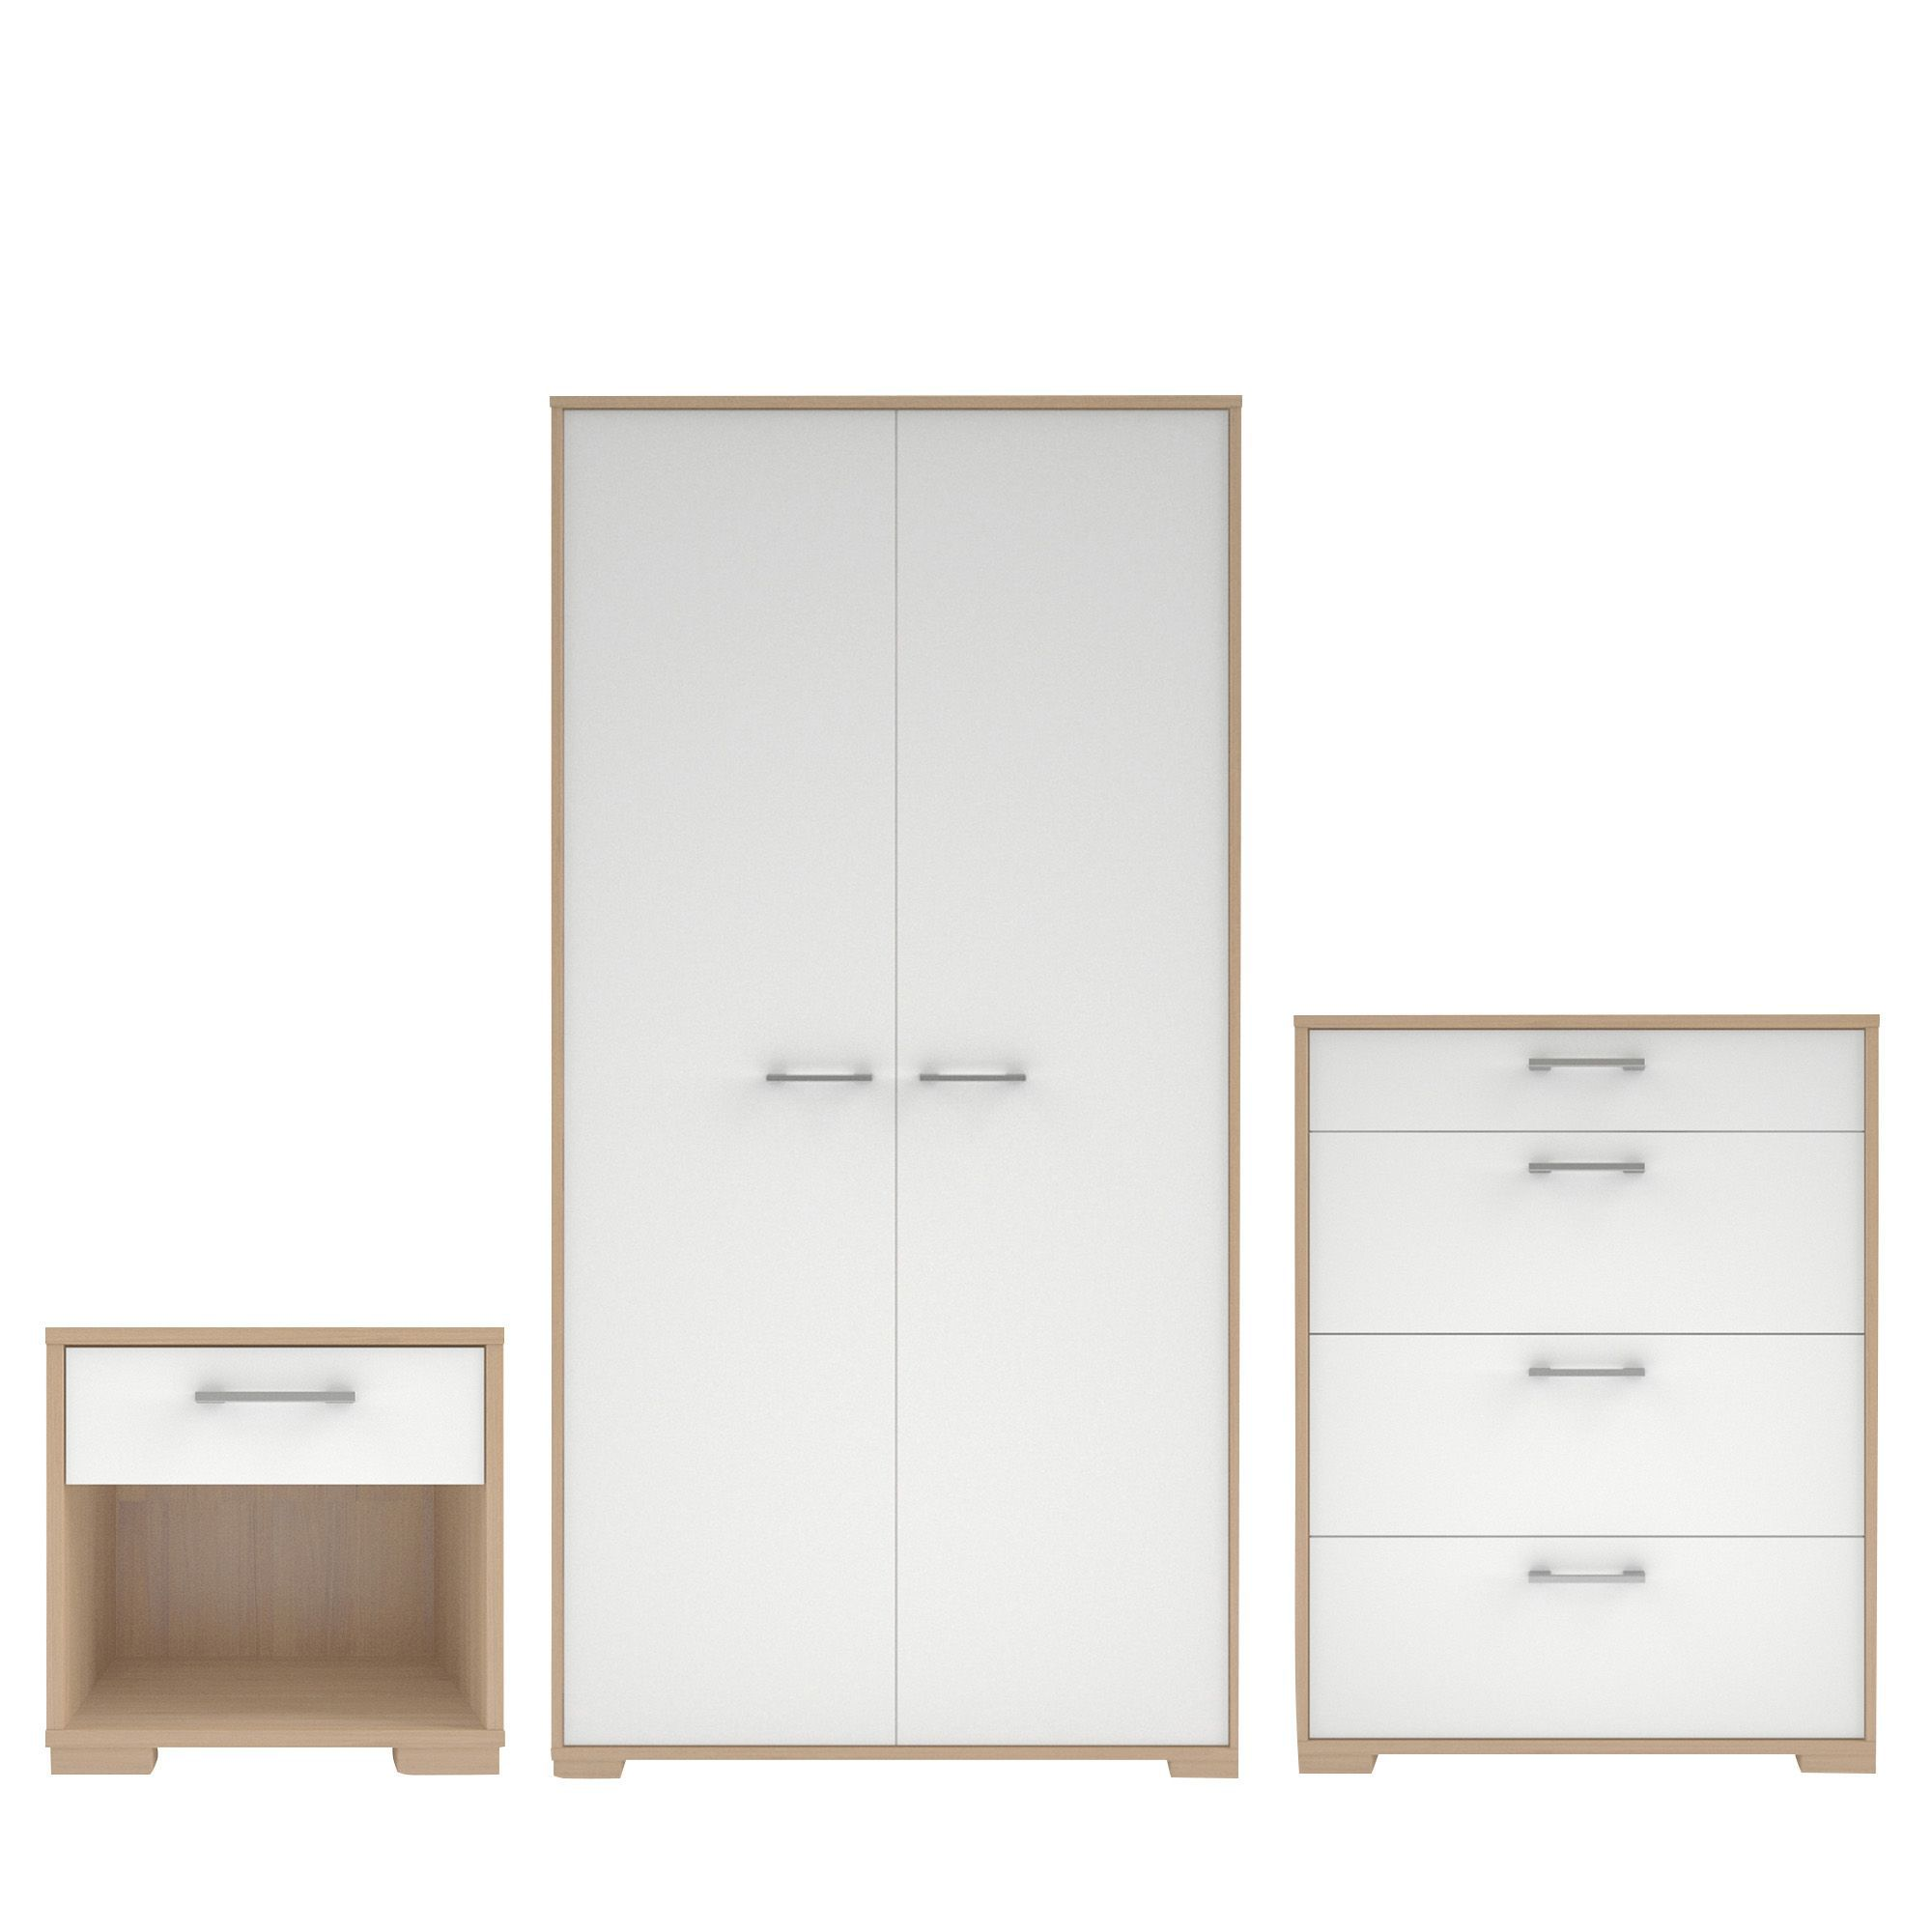 evie matt & high gloss white & oak effect 3 piece bedroom